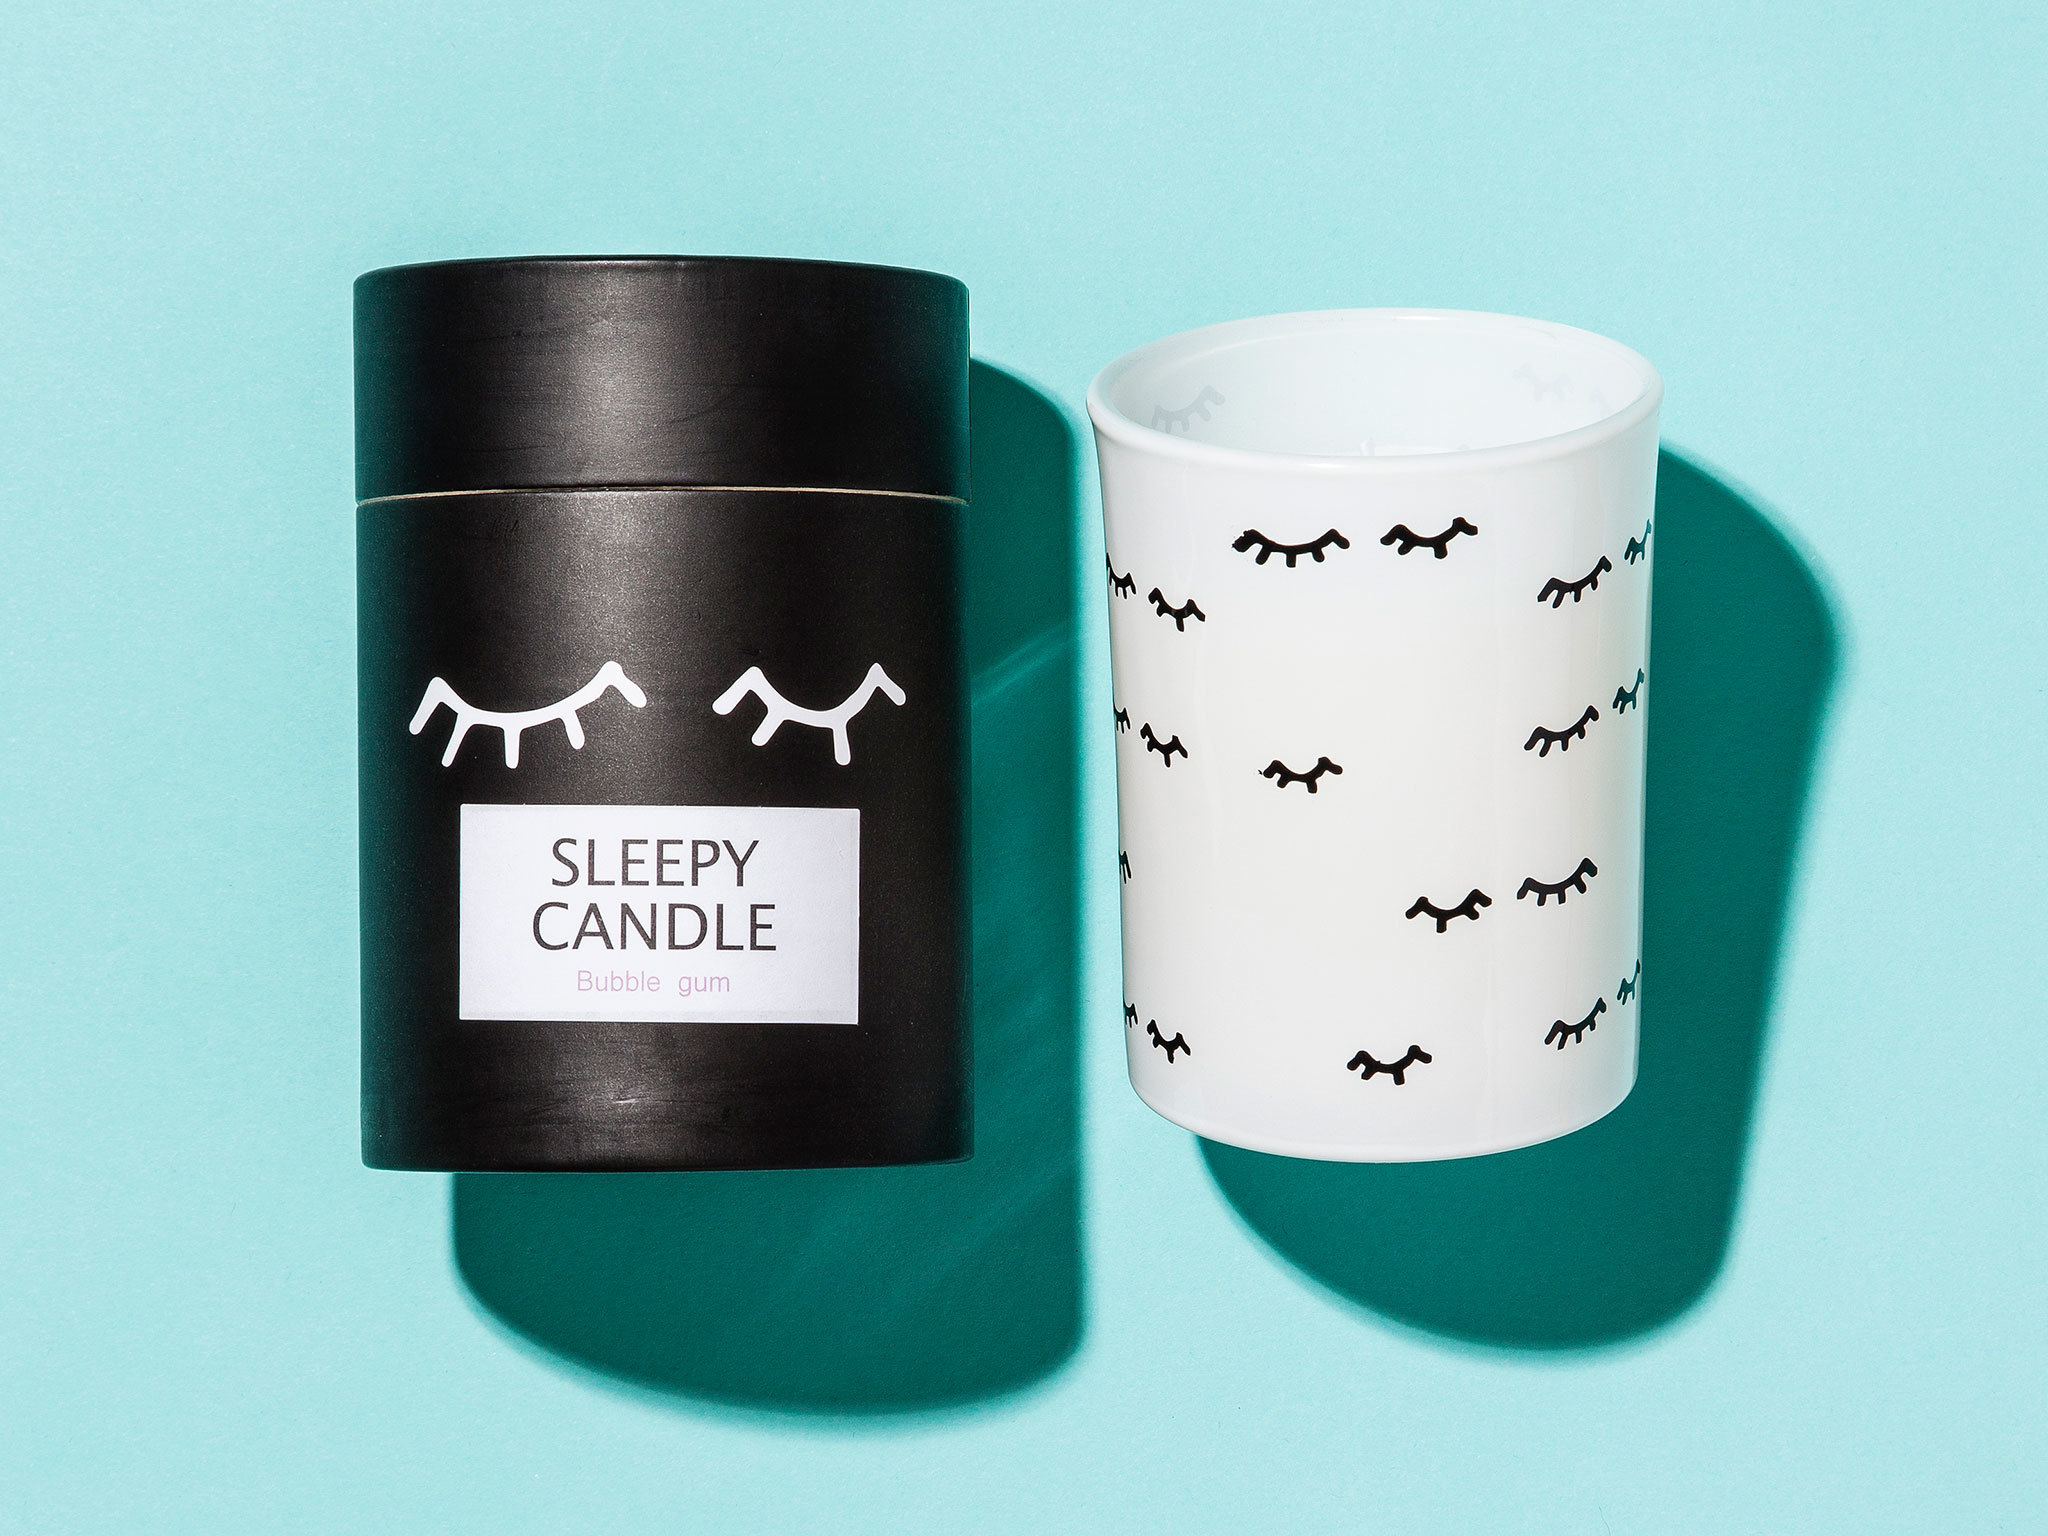 Christmas gift guide: home - Anna sleepy candle by Monki